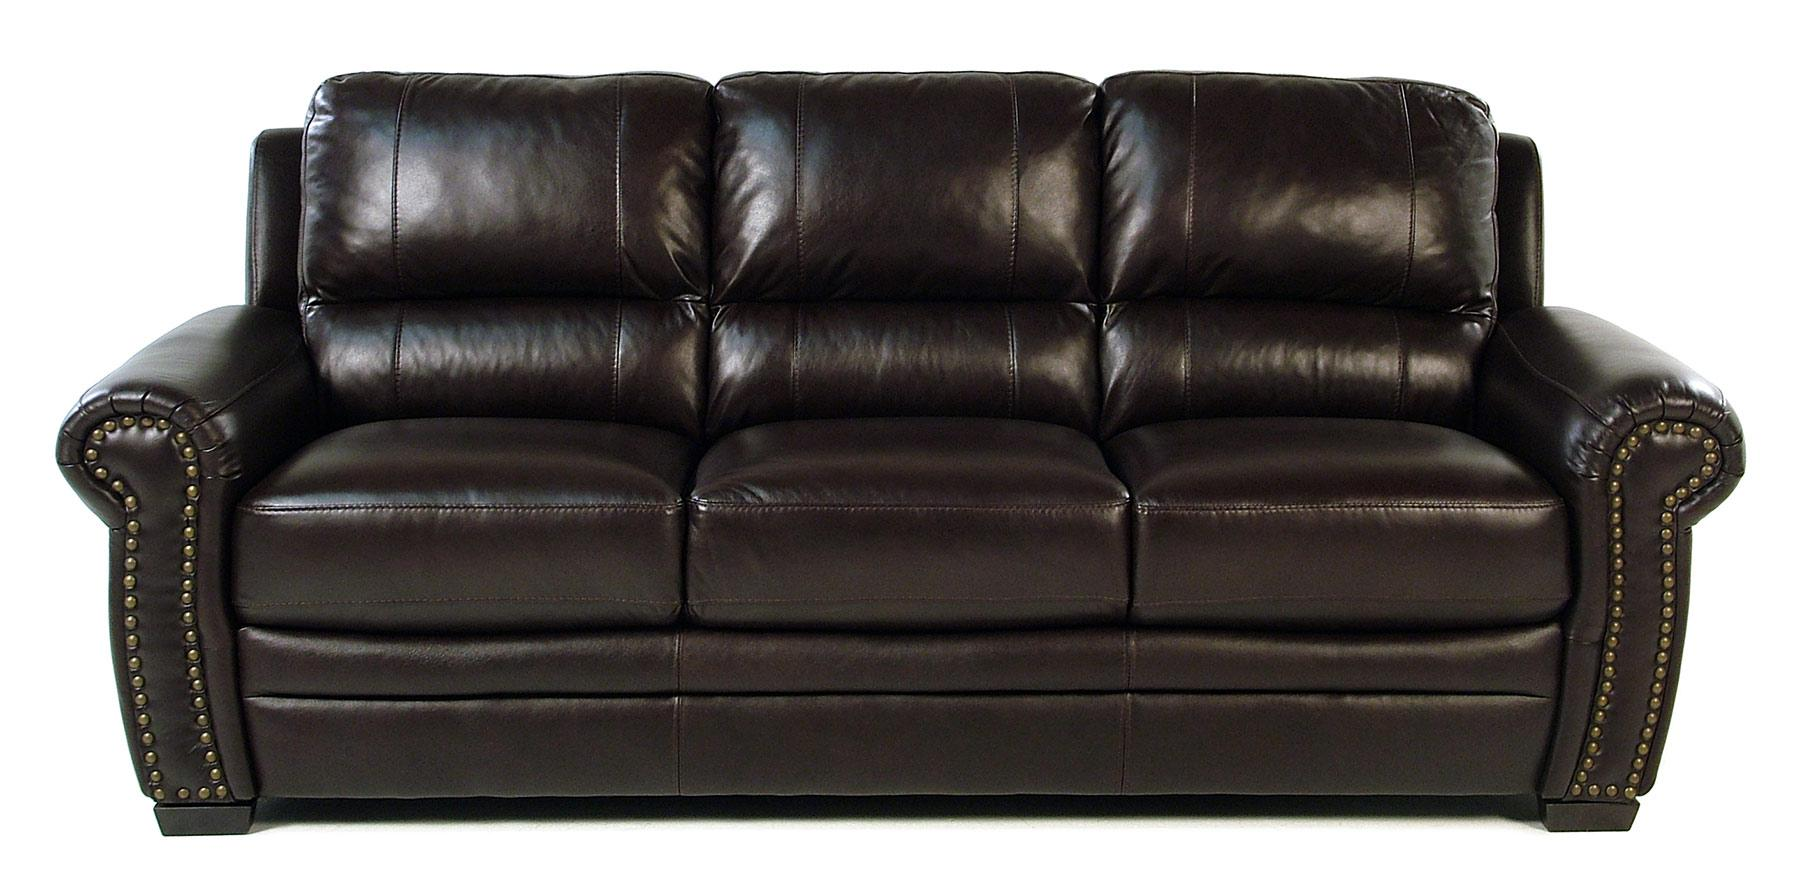 Giovani Devonshire Leather Sofa - Item Number: 10013NH-Y3S